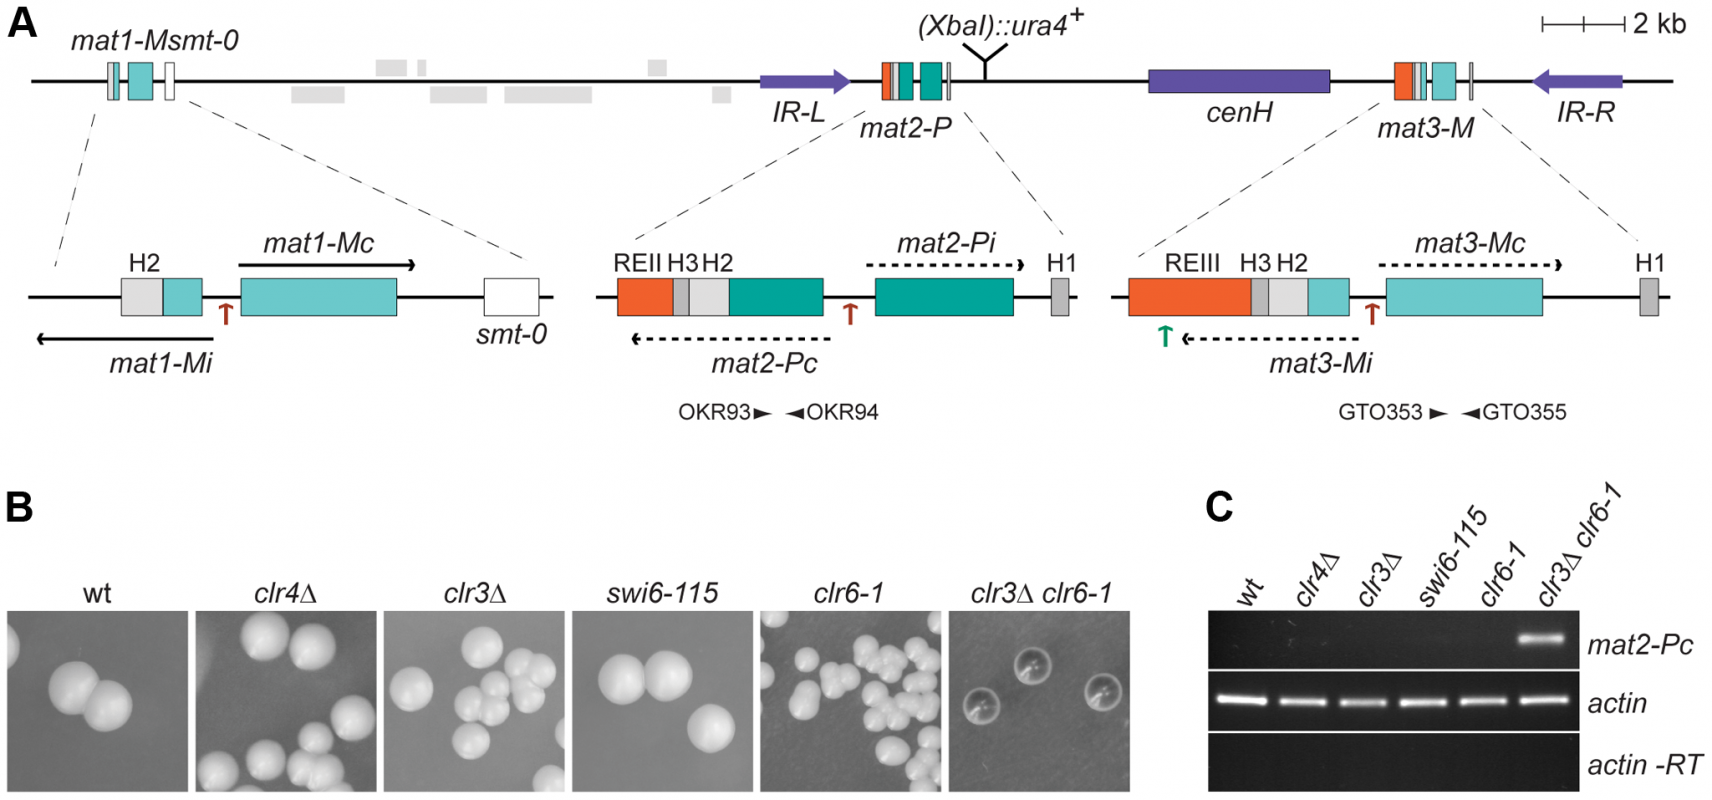 Prominant role of histone deacetylation in the repression of <i>mat2-P</i>.